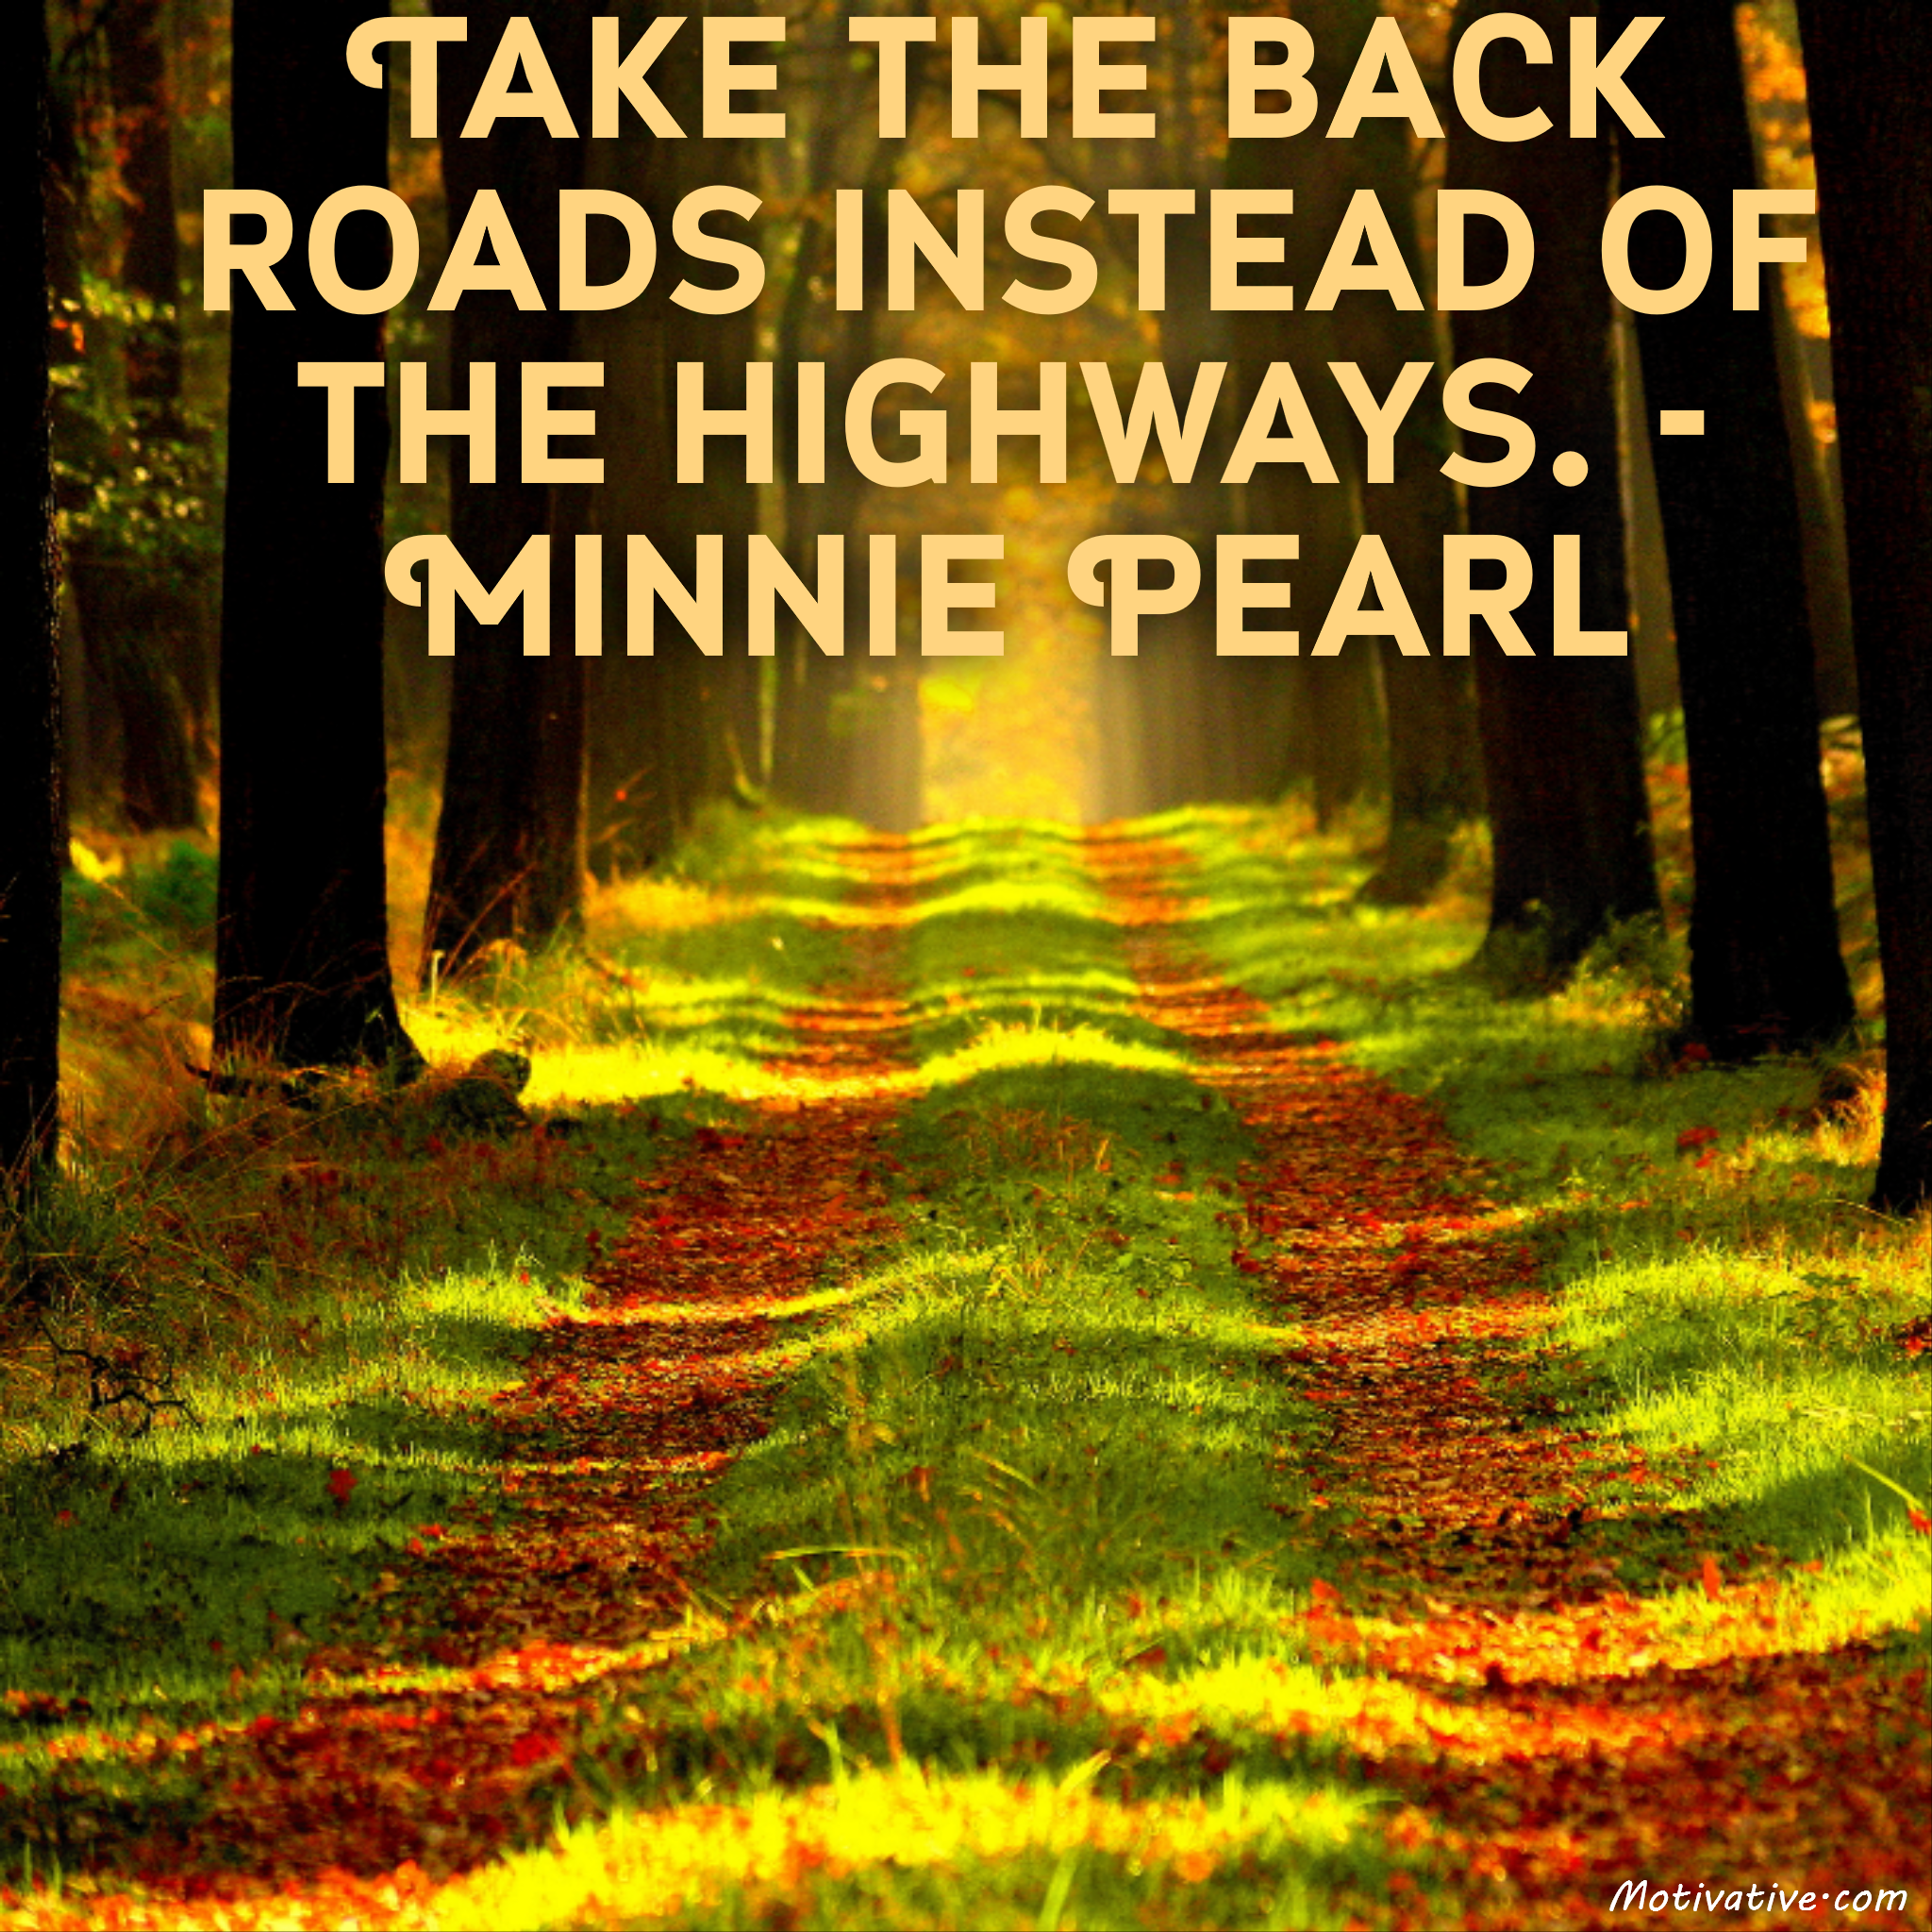 Take the back roads instead of the highways. – Minnie Pearl